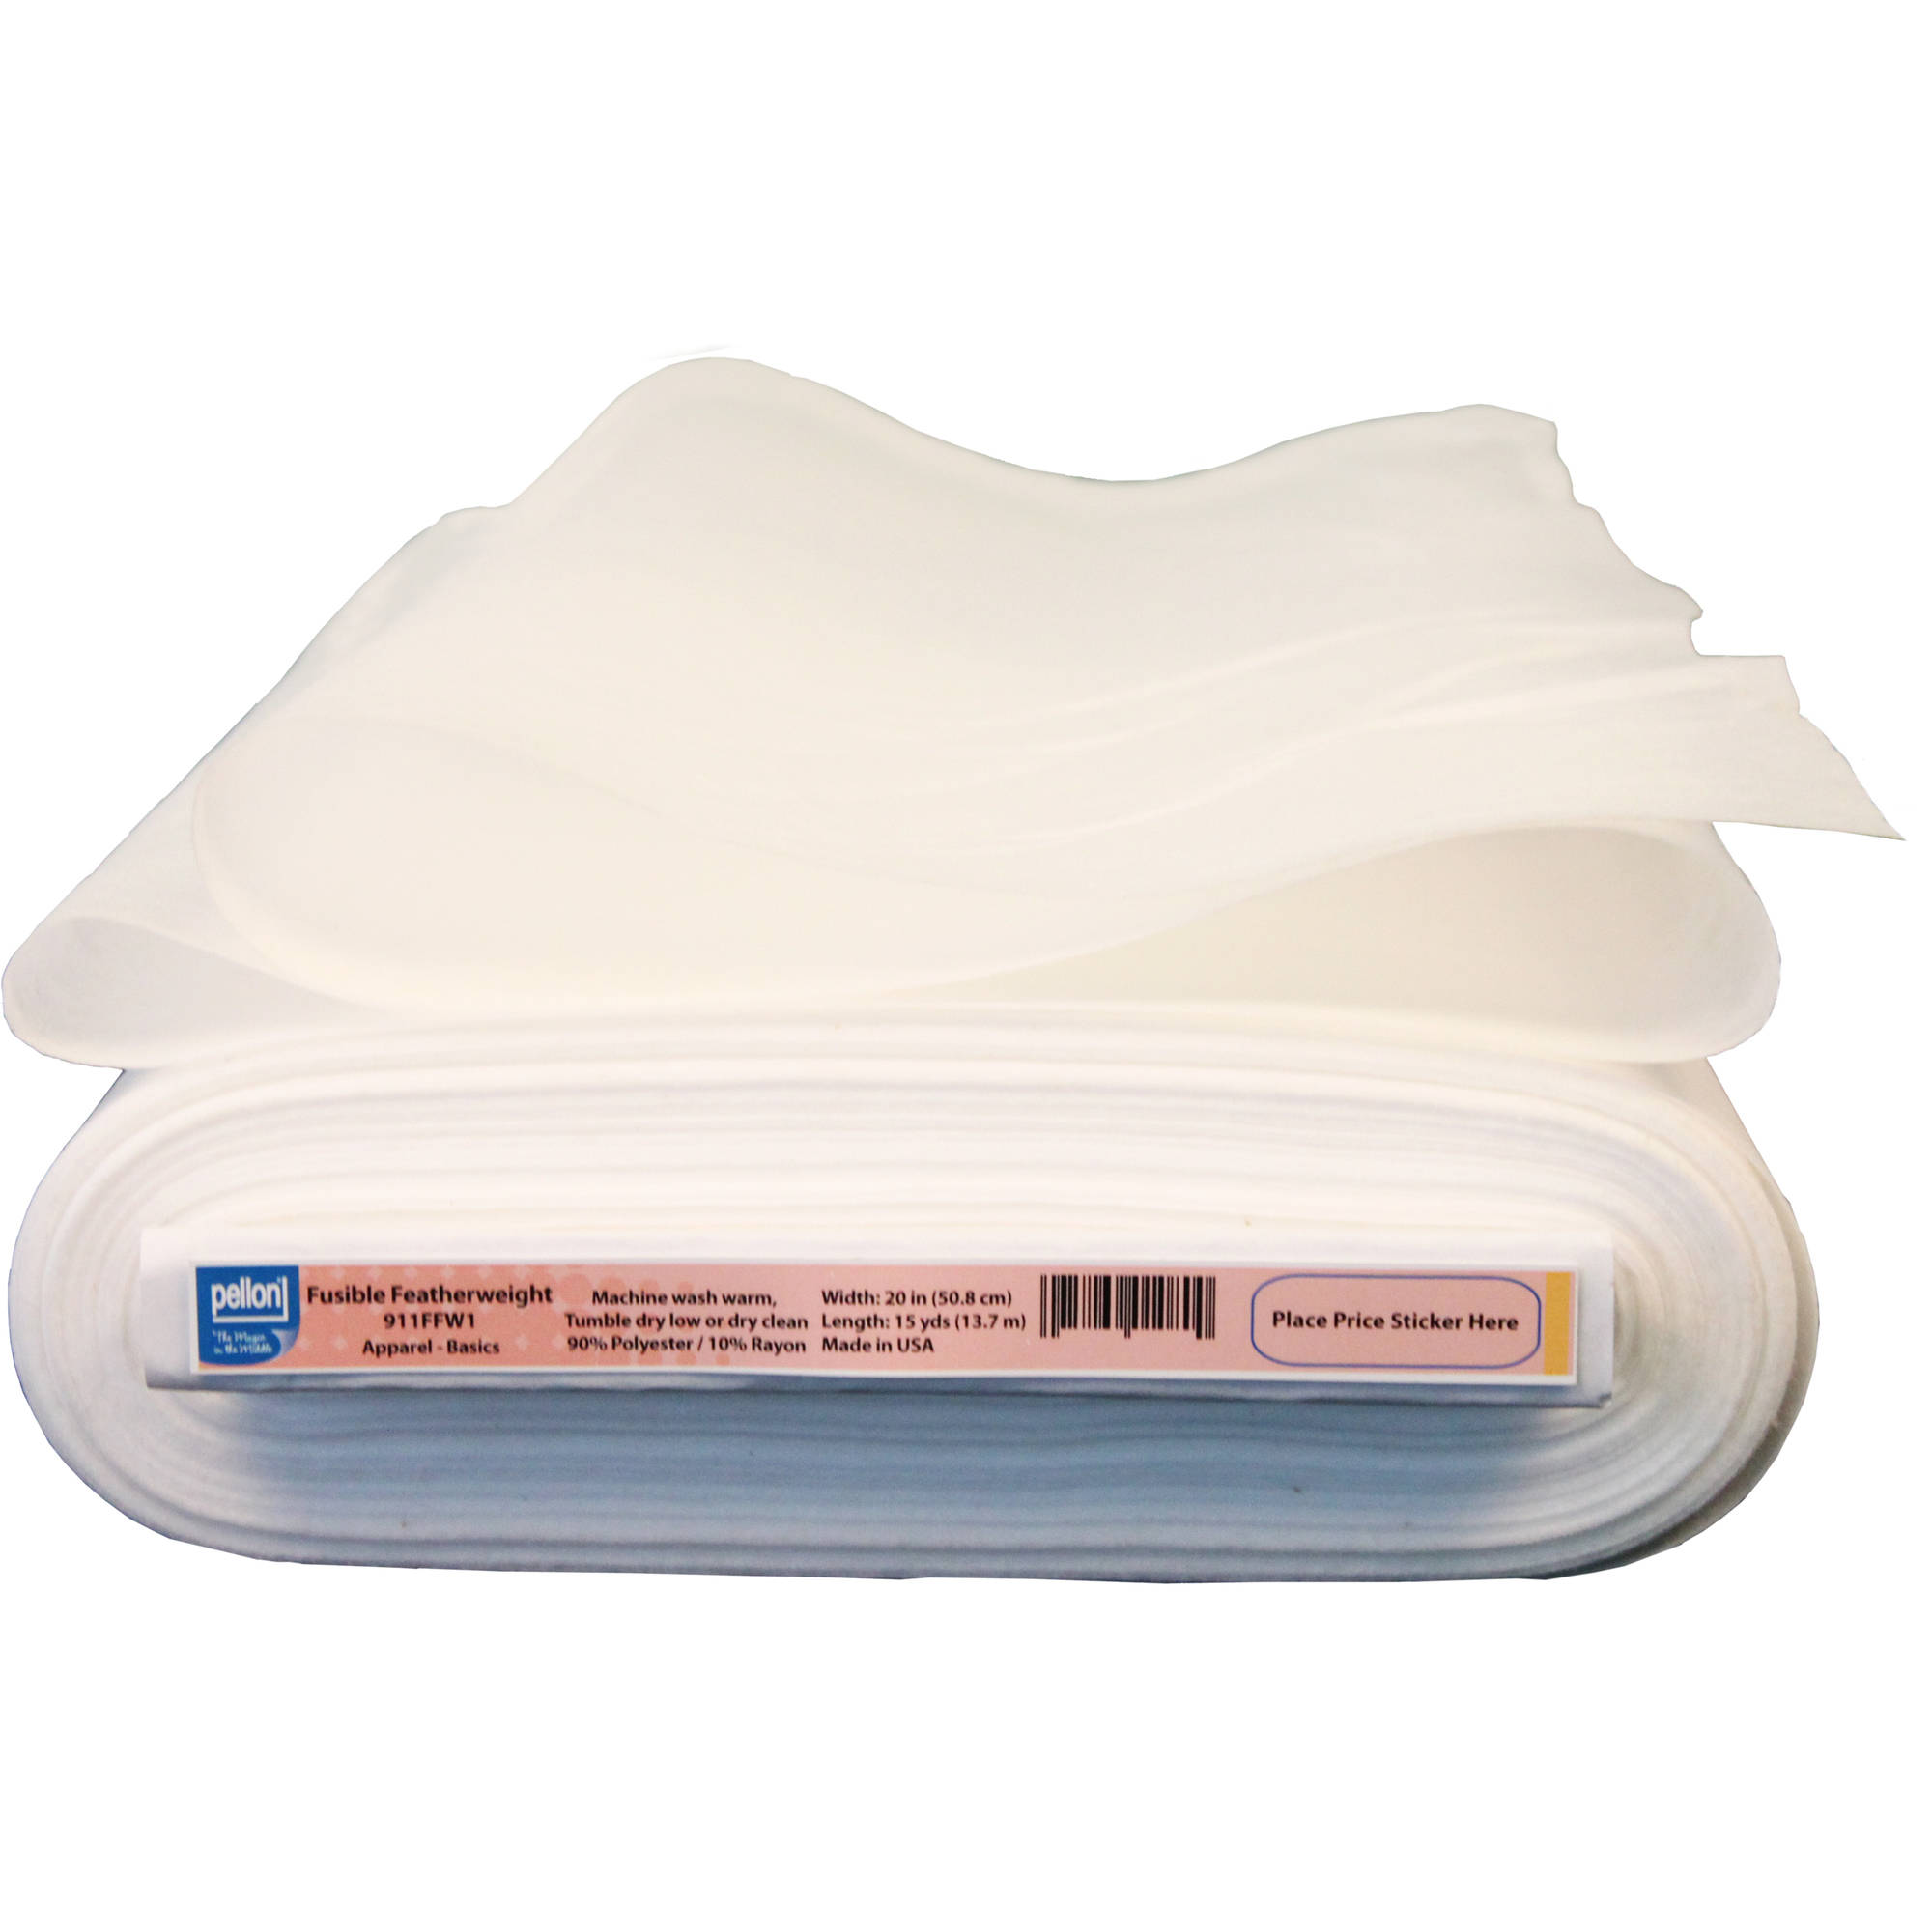 "Pellon 911FF Fusible Featherweight, White, 20"" x 15 Yards"